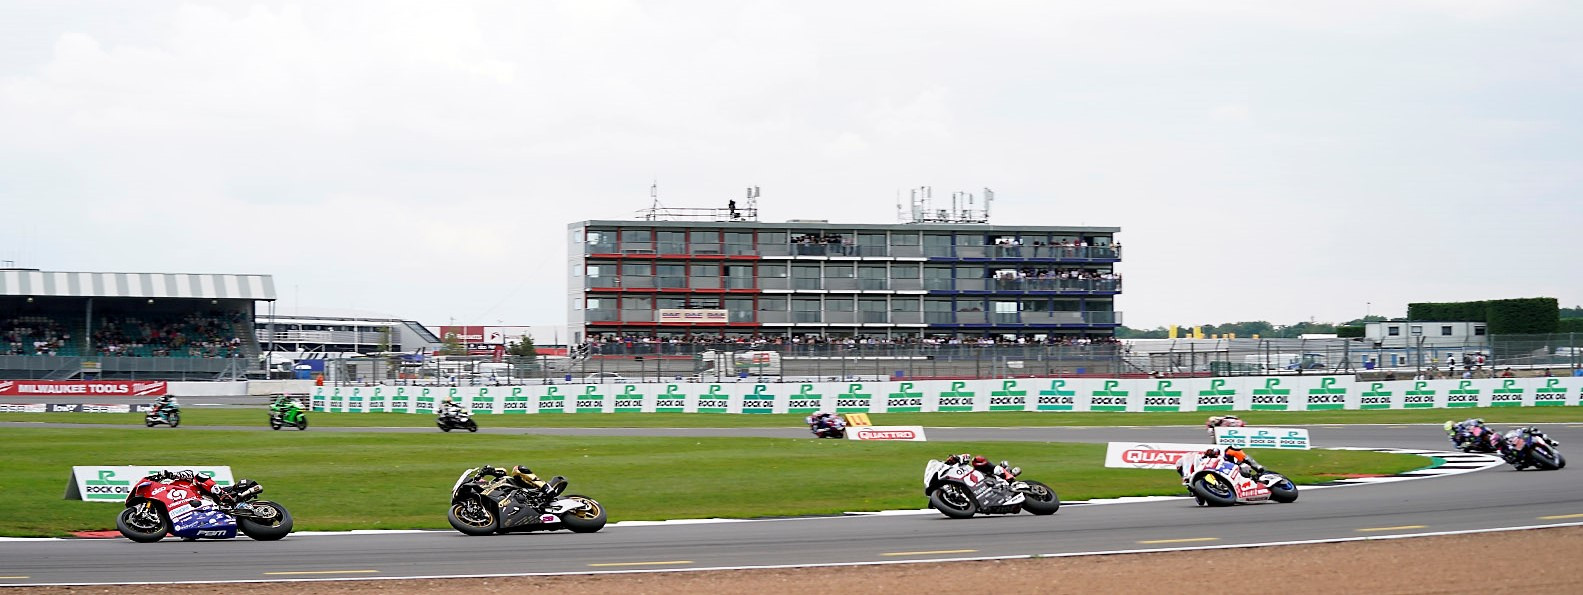 Action from a British Superbike race Sunday at Silverstone. Photo courtesy MotorSport Vision Racing.